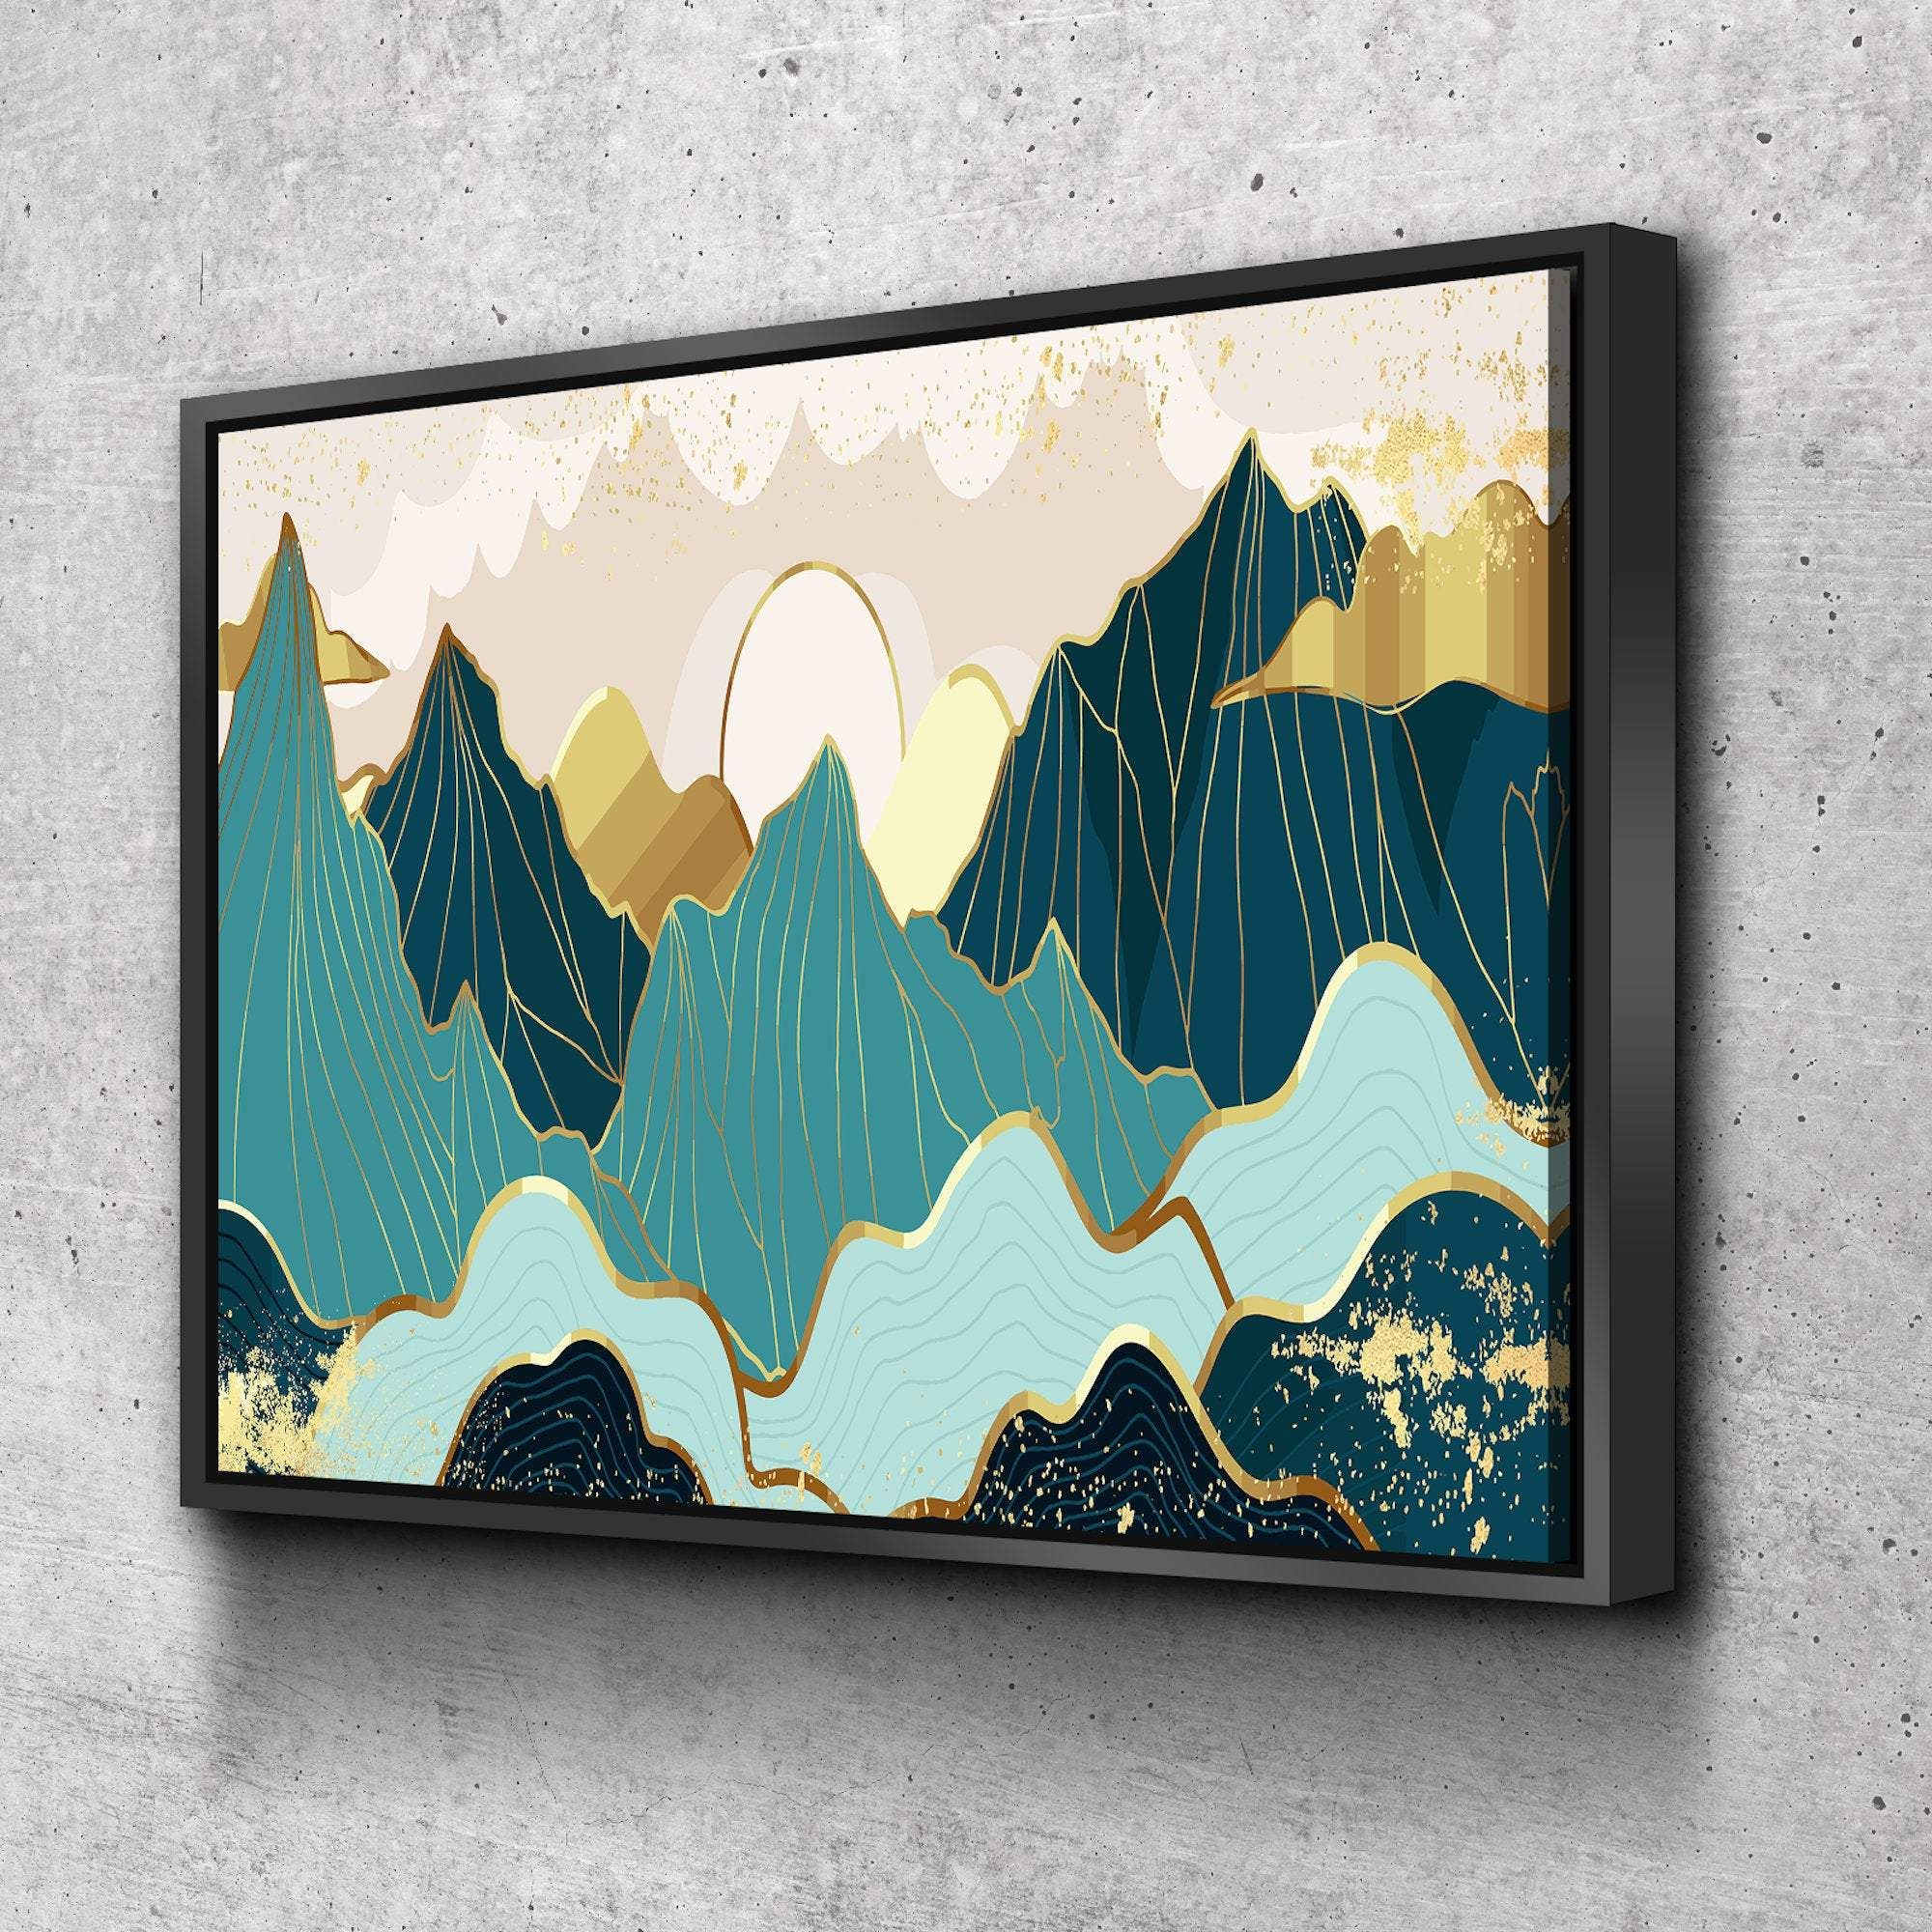 Framed Canvas Home Artwork Decoration Abstract Mountain Nature Scenery Canvas Wall Art for Living Room Bedroom Canvas Wall Art Ready to Hang - 1 Panel 24x18 / Gallery Wrap